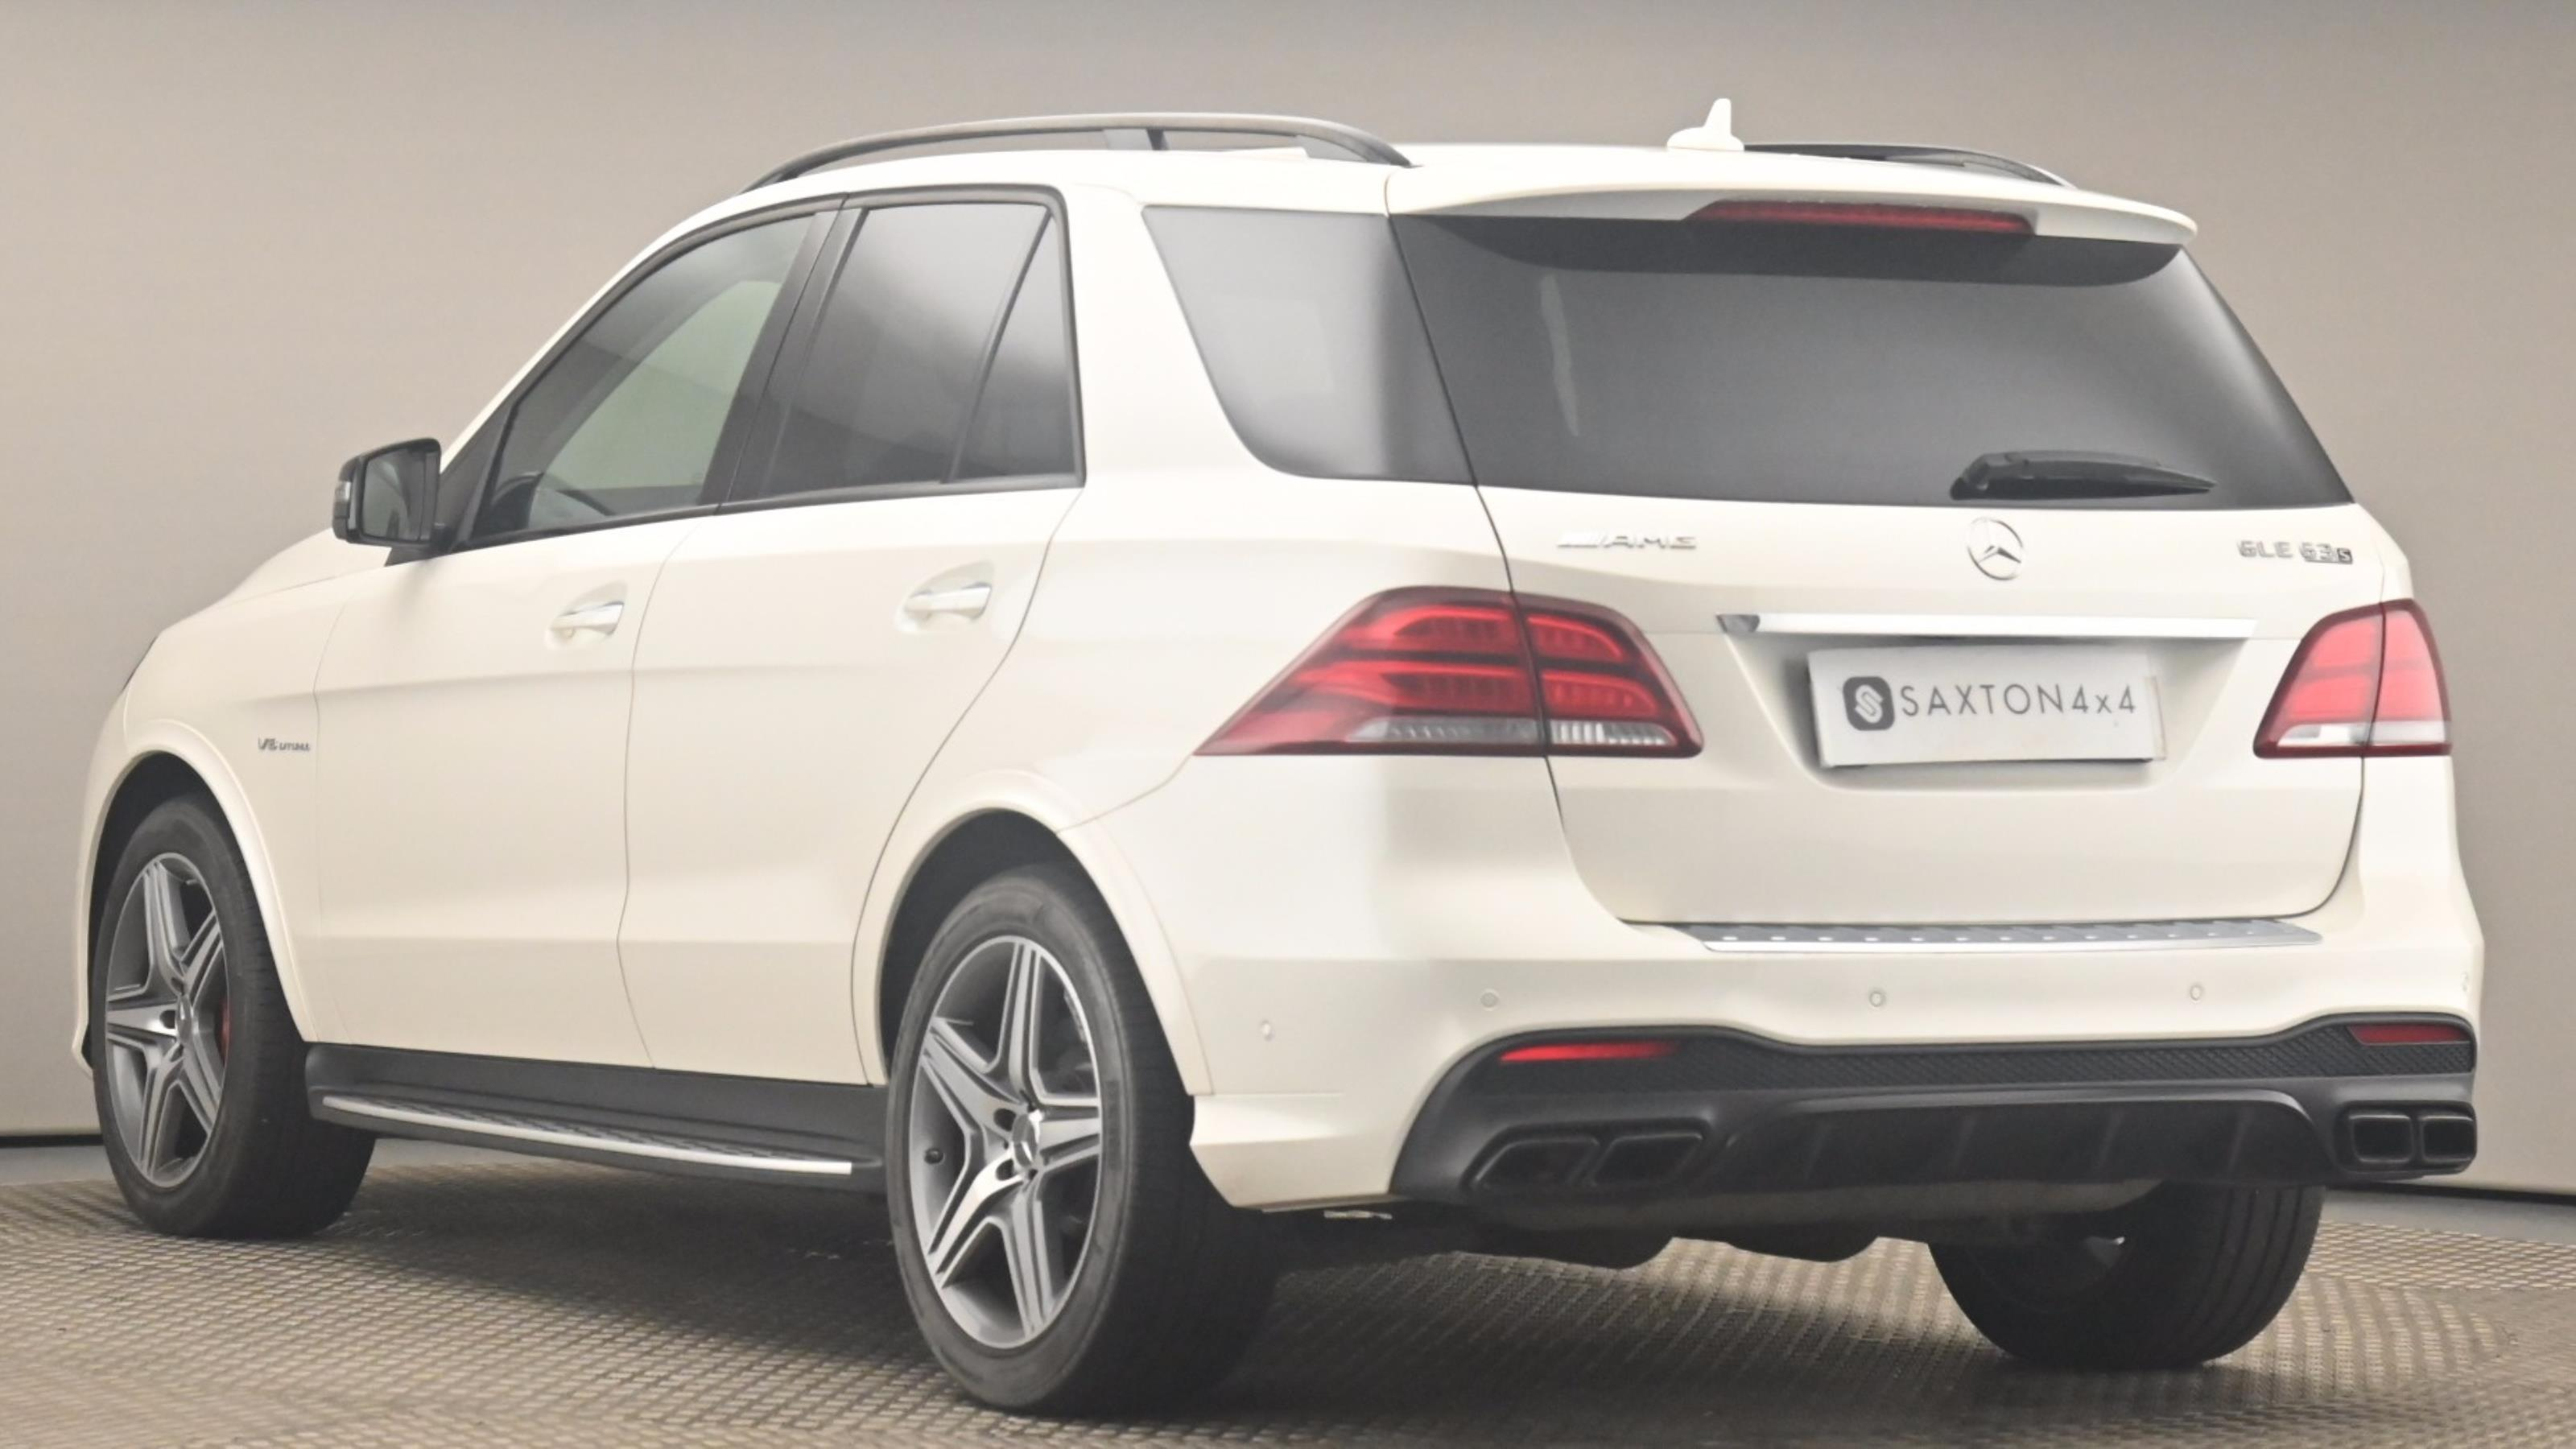 Used 2018 Mercedes-Benz GLE AMG GLE 63 S 4Matic Premium 5dr 7G-Tronic WHITE at Saxton4x4